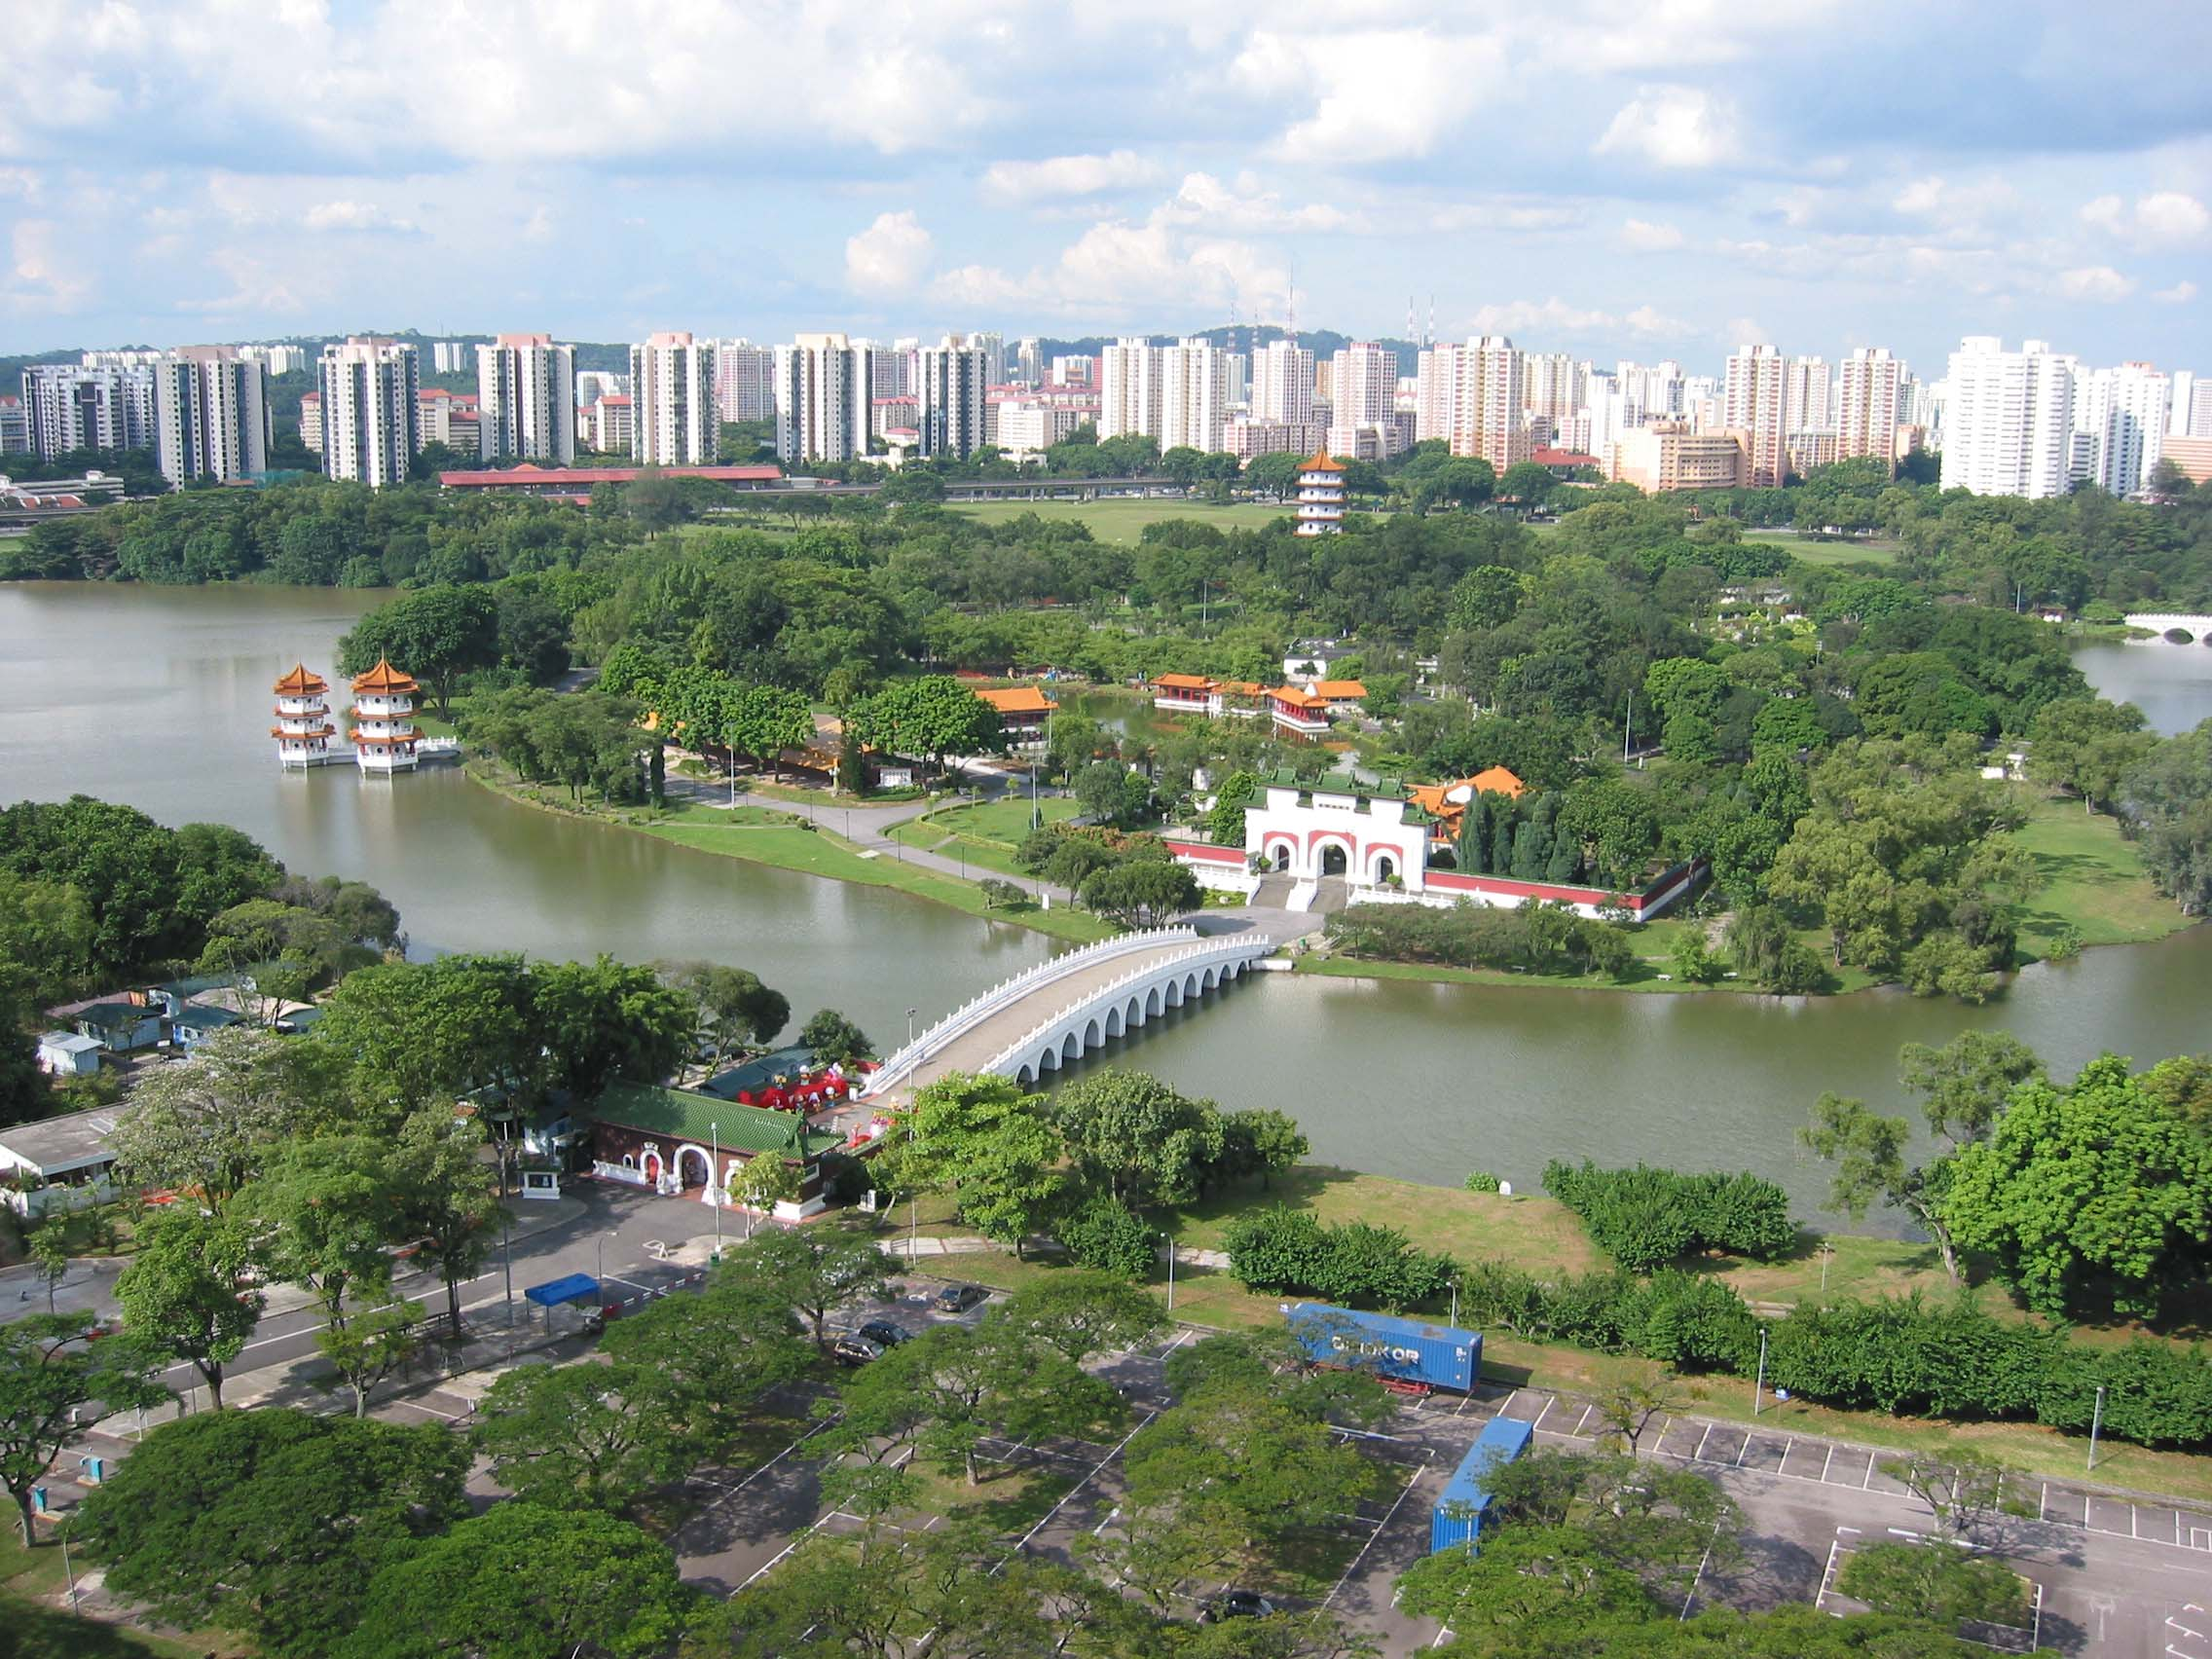 File:Southern to middle part of Jurong Lake, Singapore.jpg ...